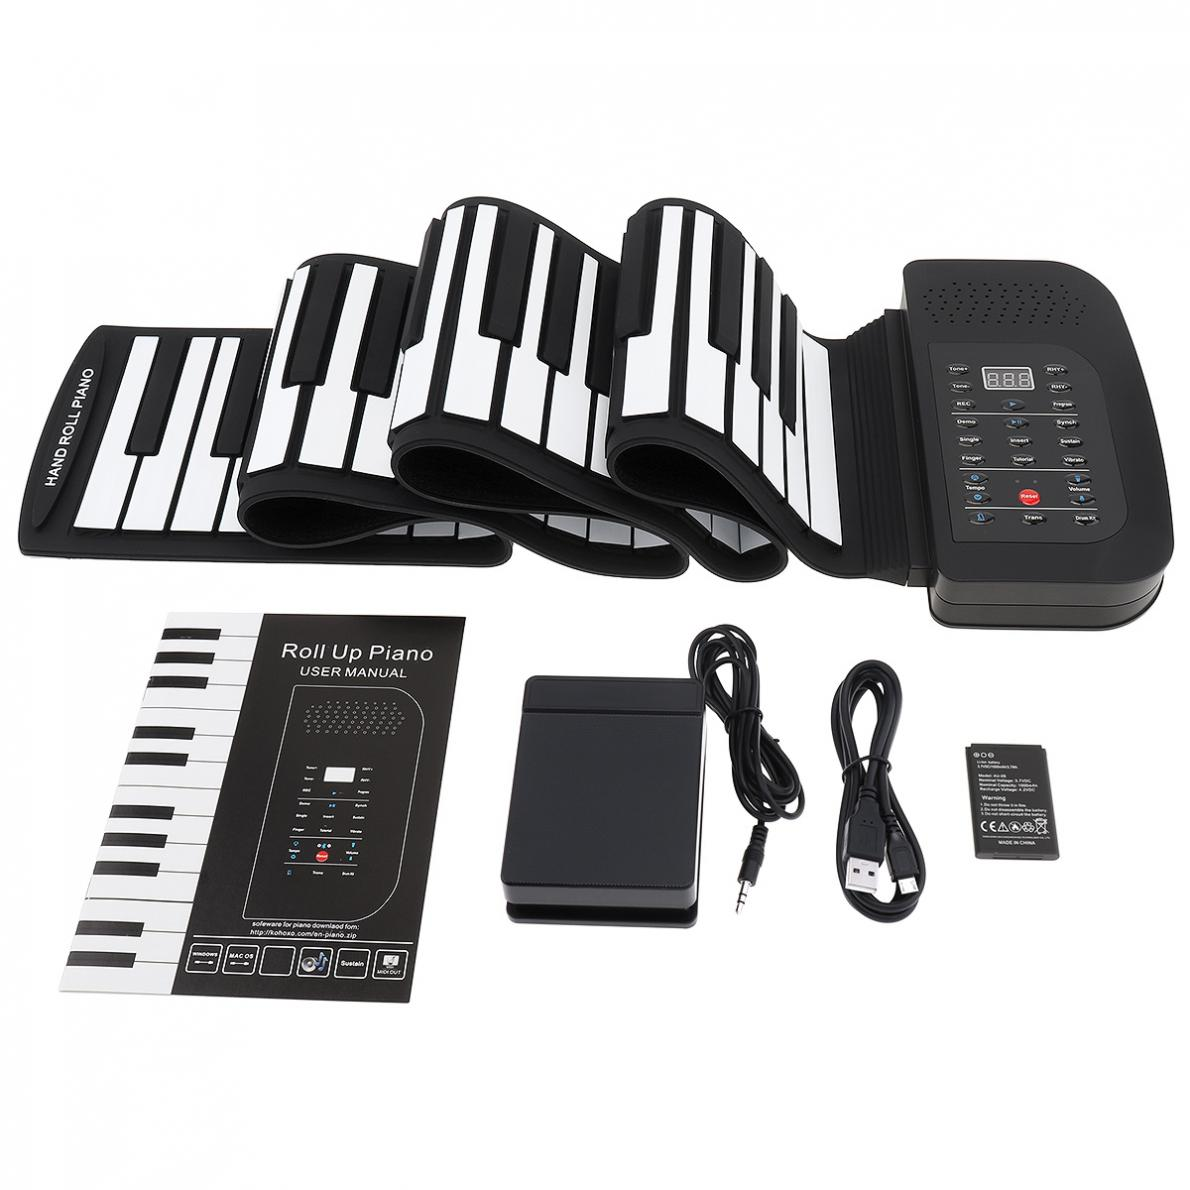 88 Keys Roll Up Electronic Piano Rechargeable Silicone Flexible Keyboard Organ Built-in Speaker Support MIDI Bluetooth enlarge